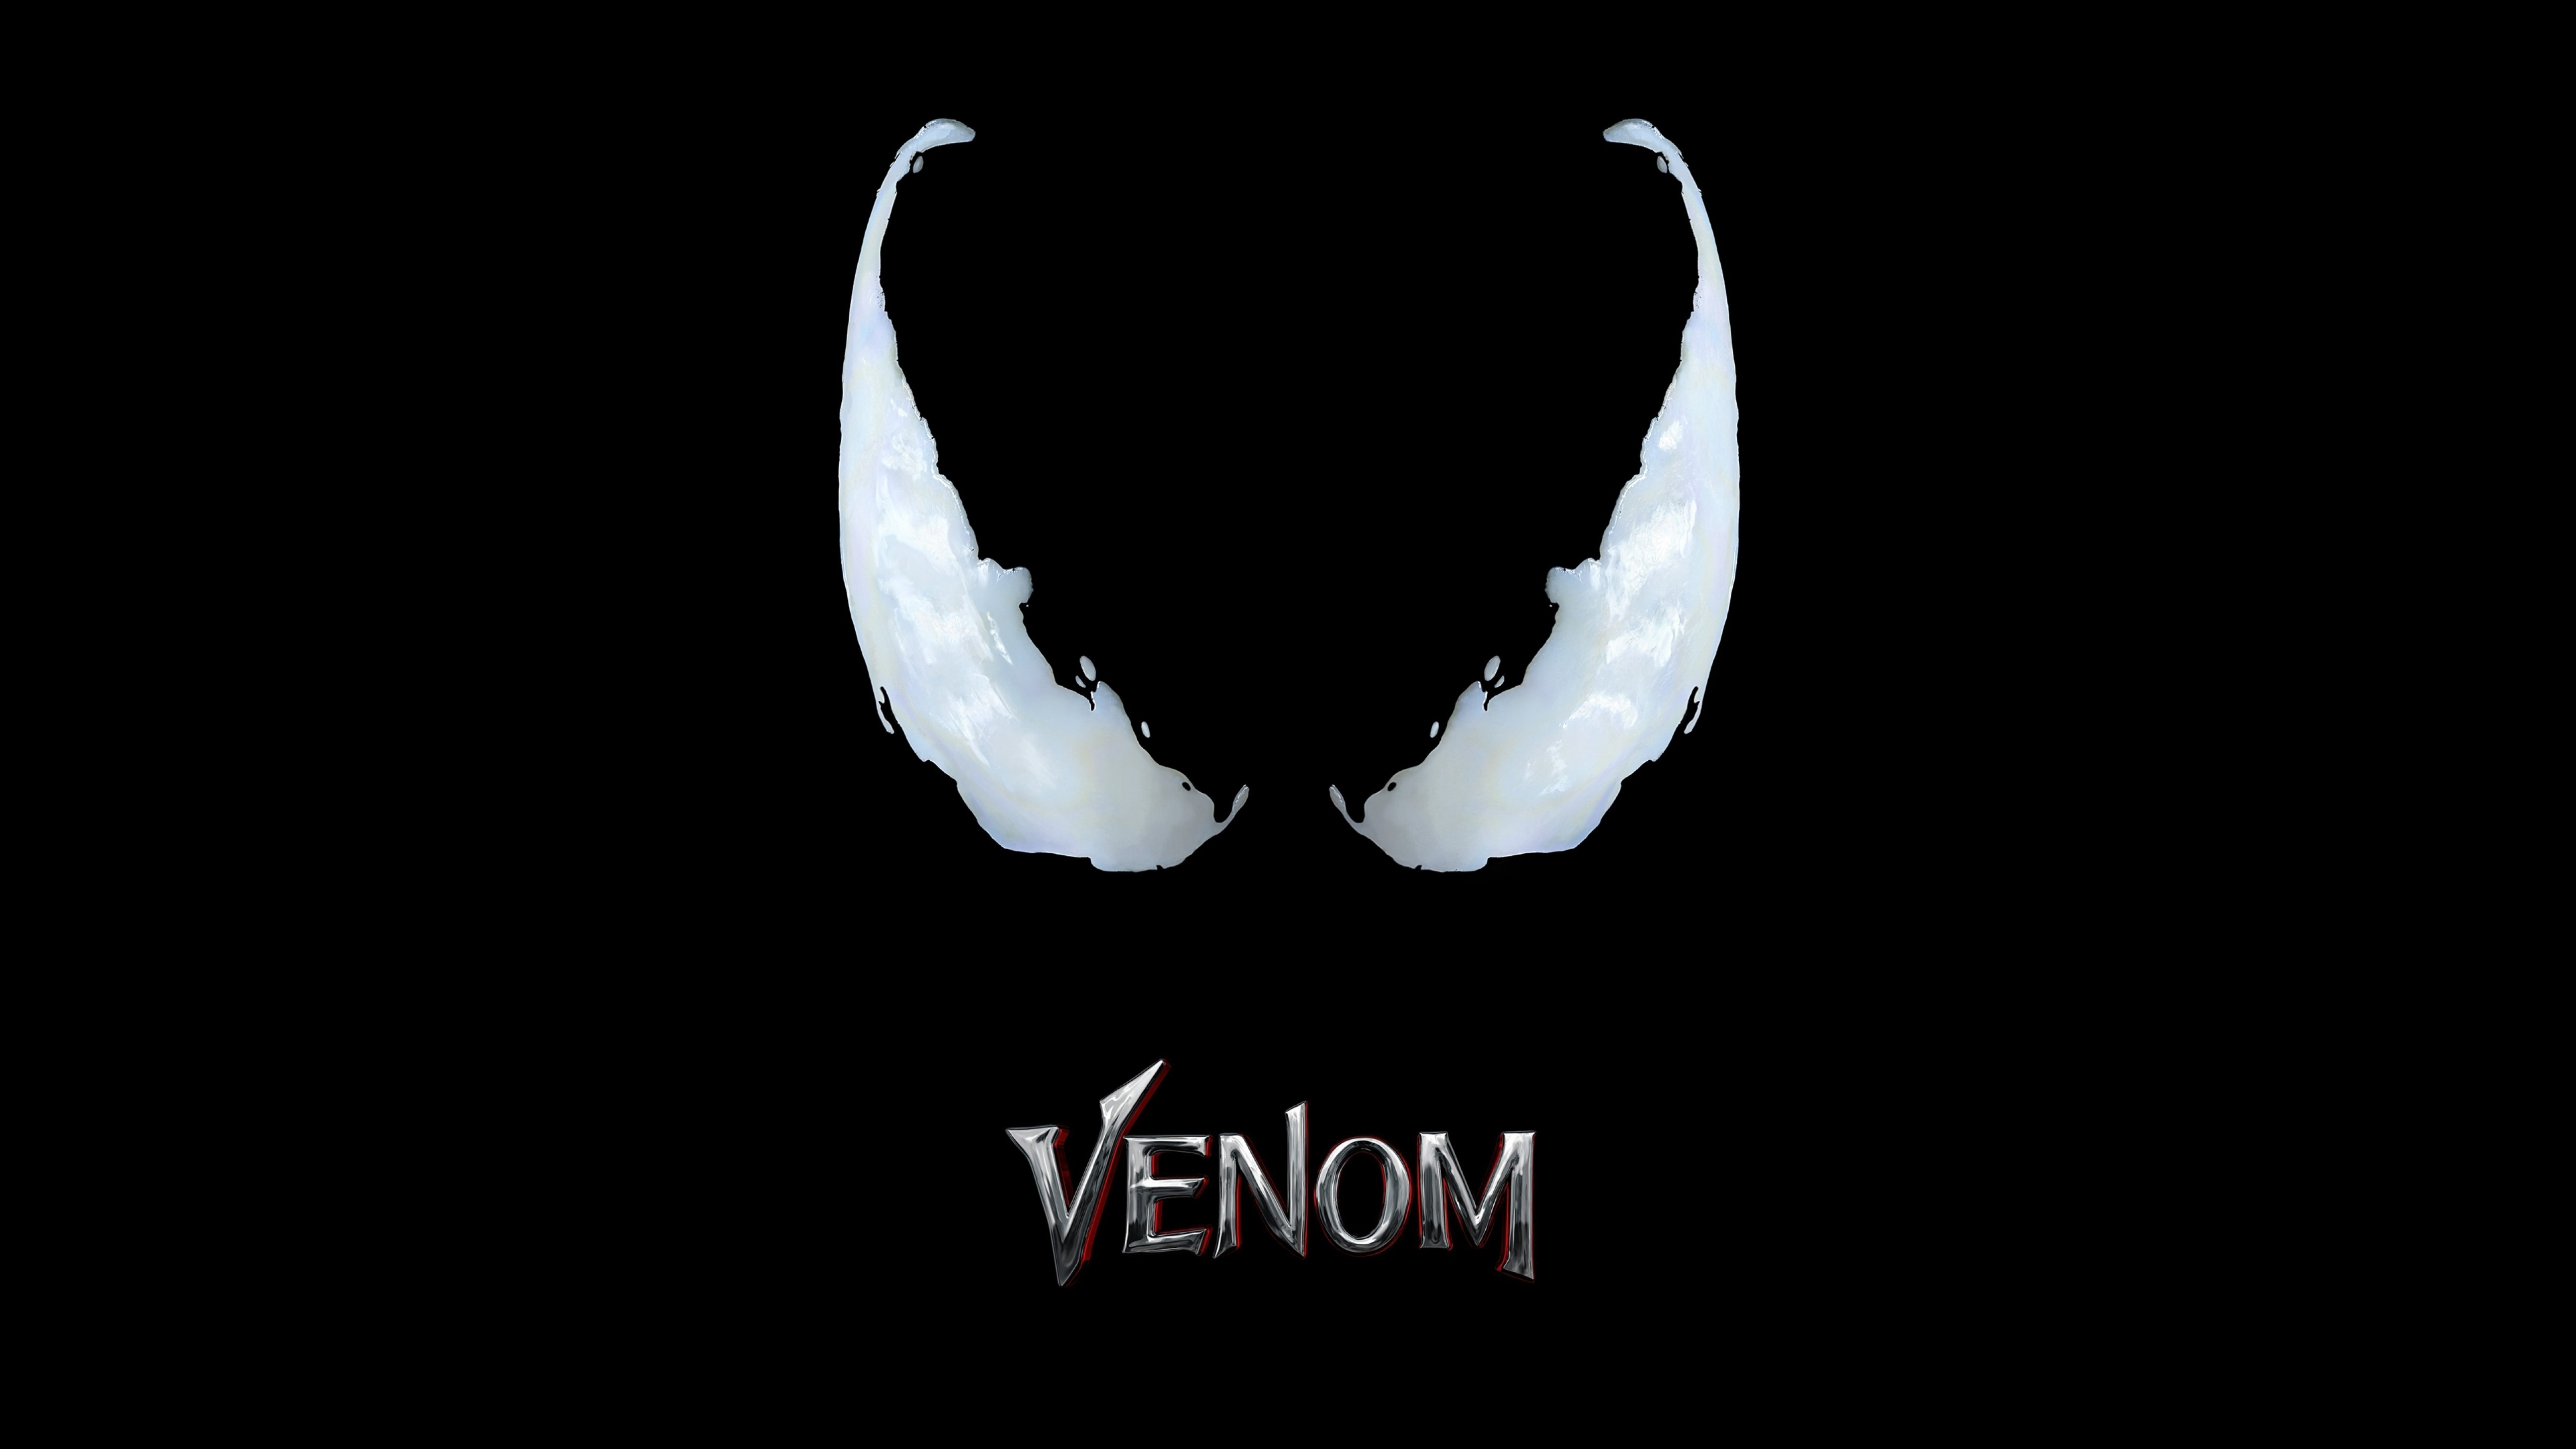 wallpaper venom  poster  8k  movies  17493